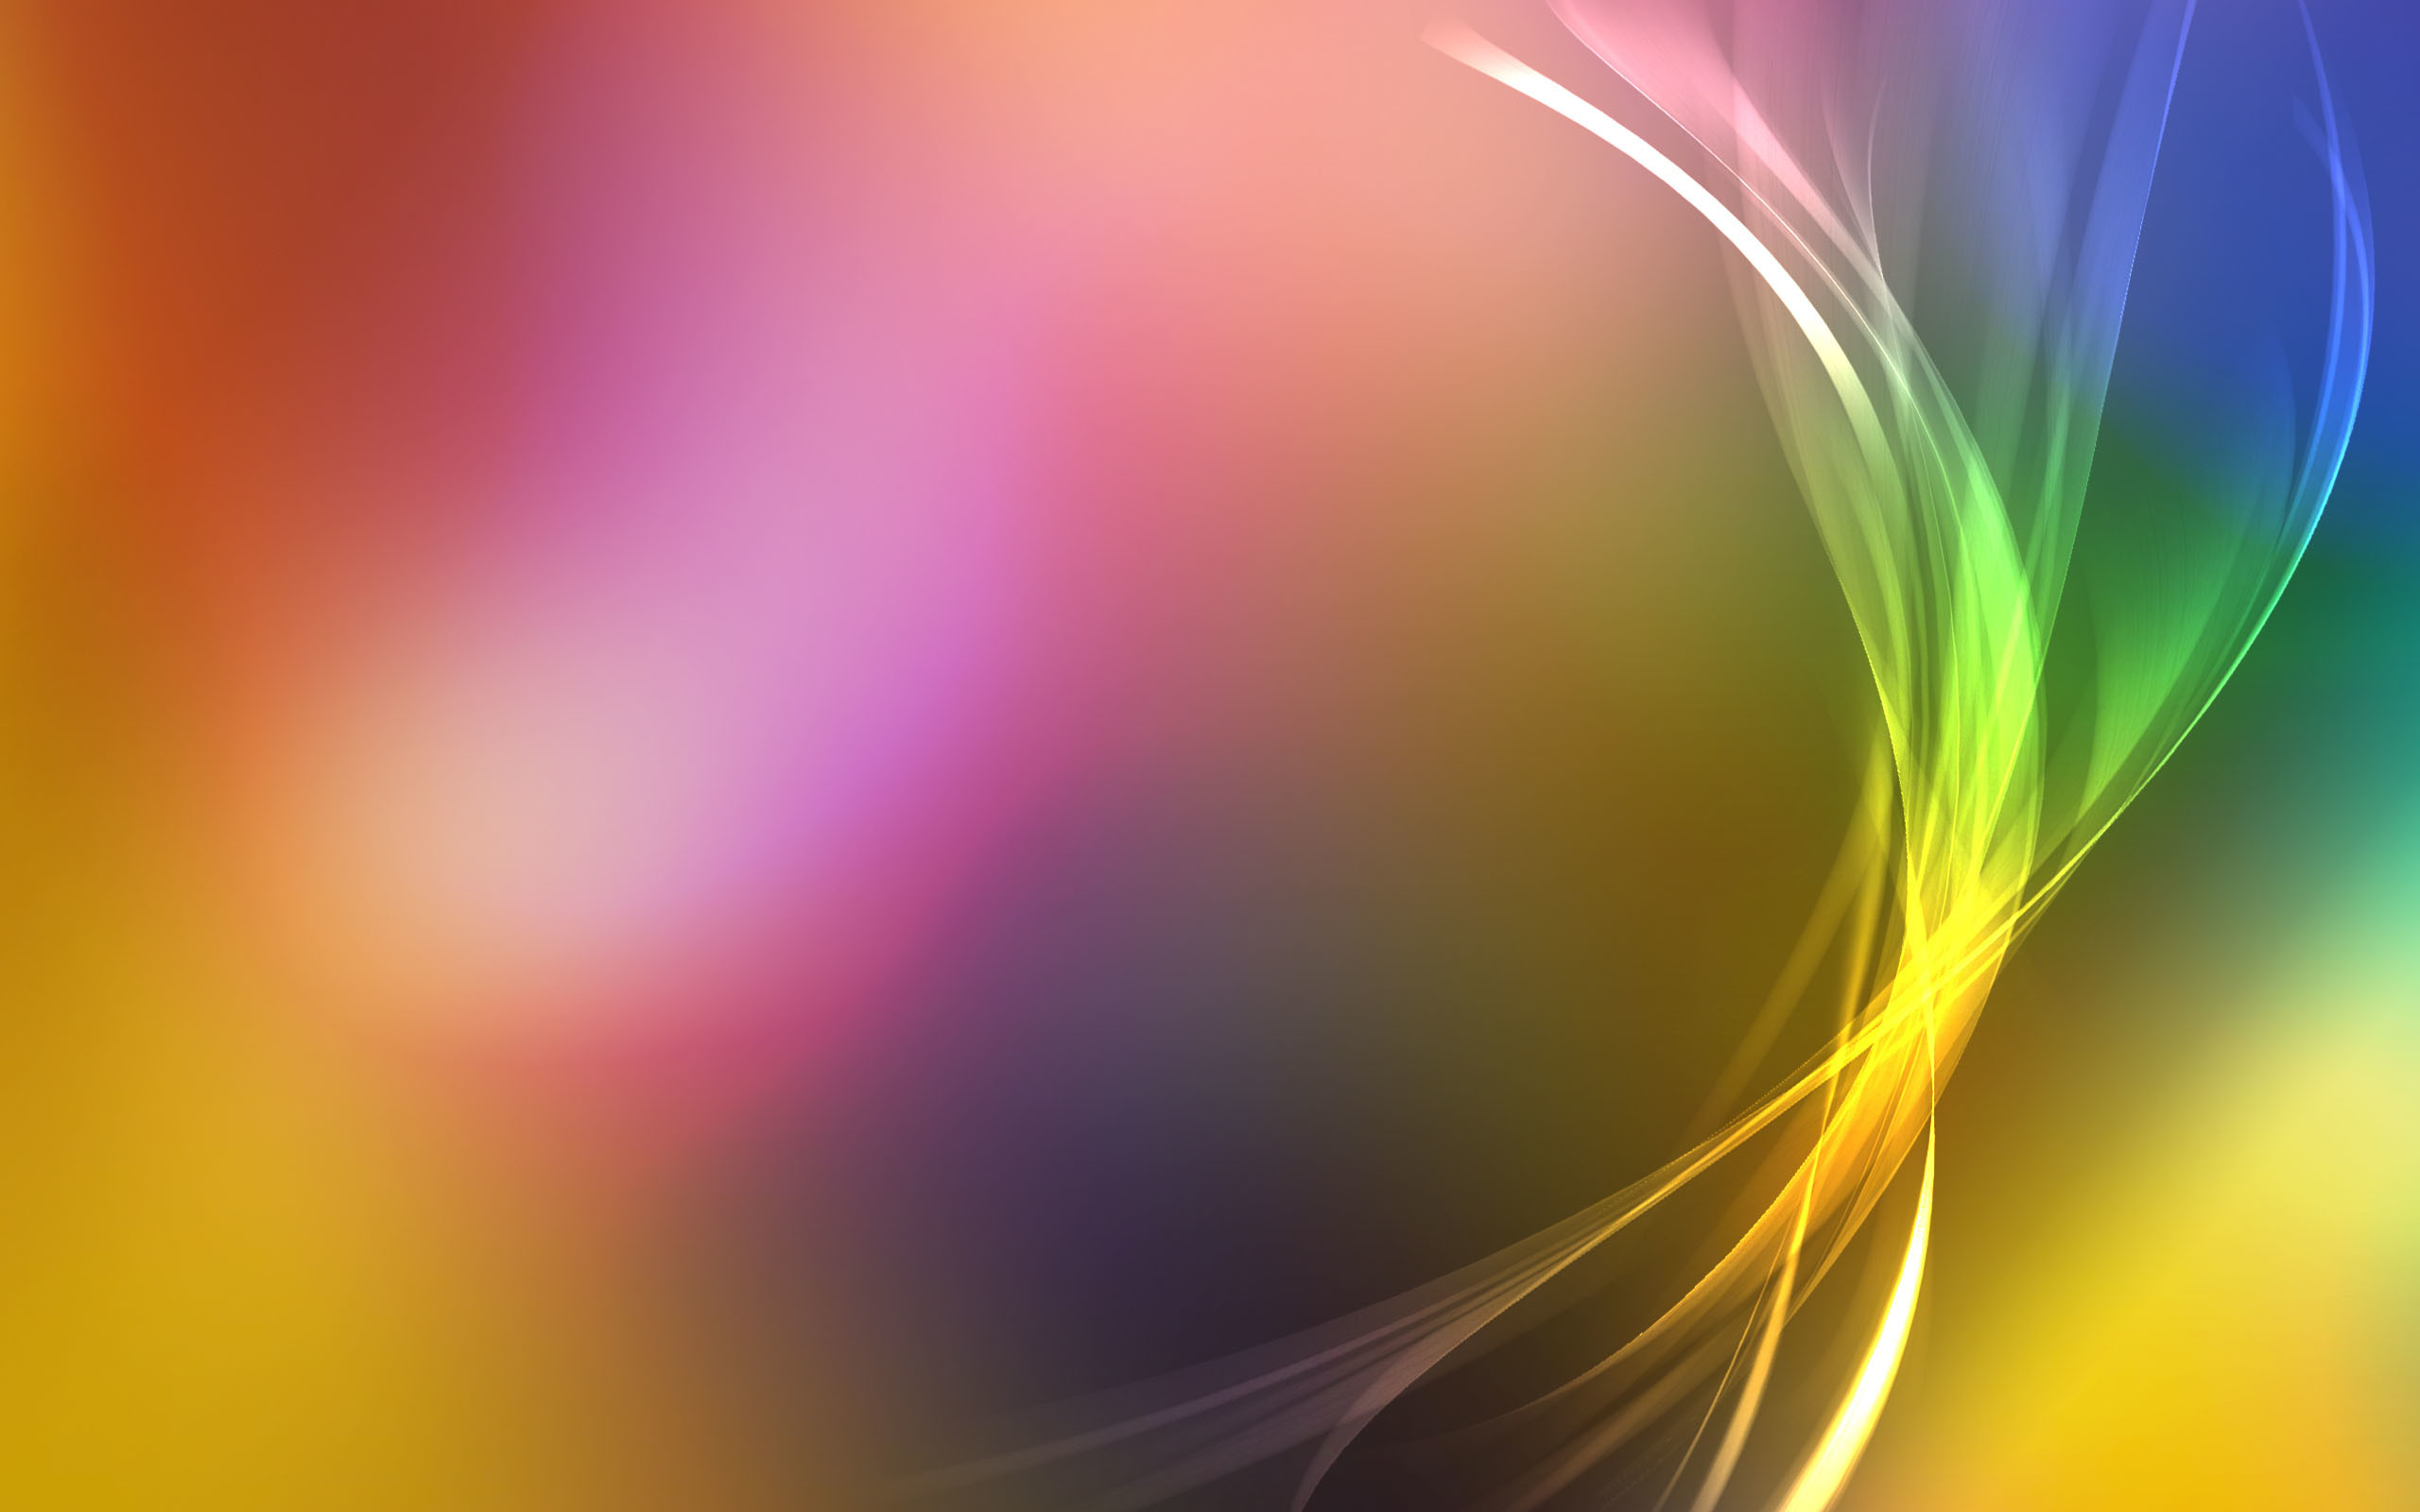 Res: 2560x1600, colorful background wallpaper hd 1